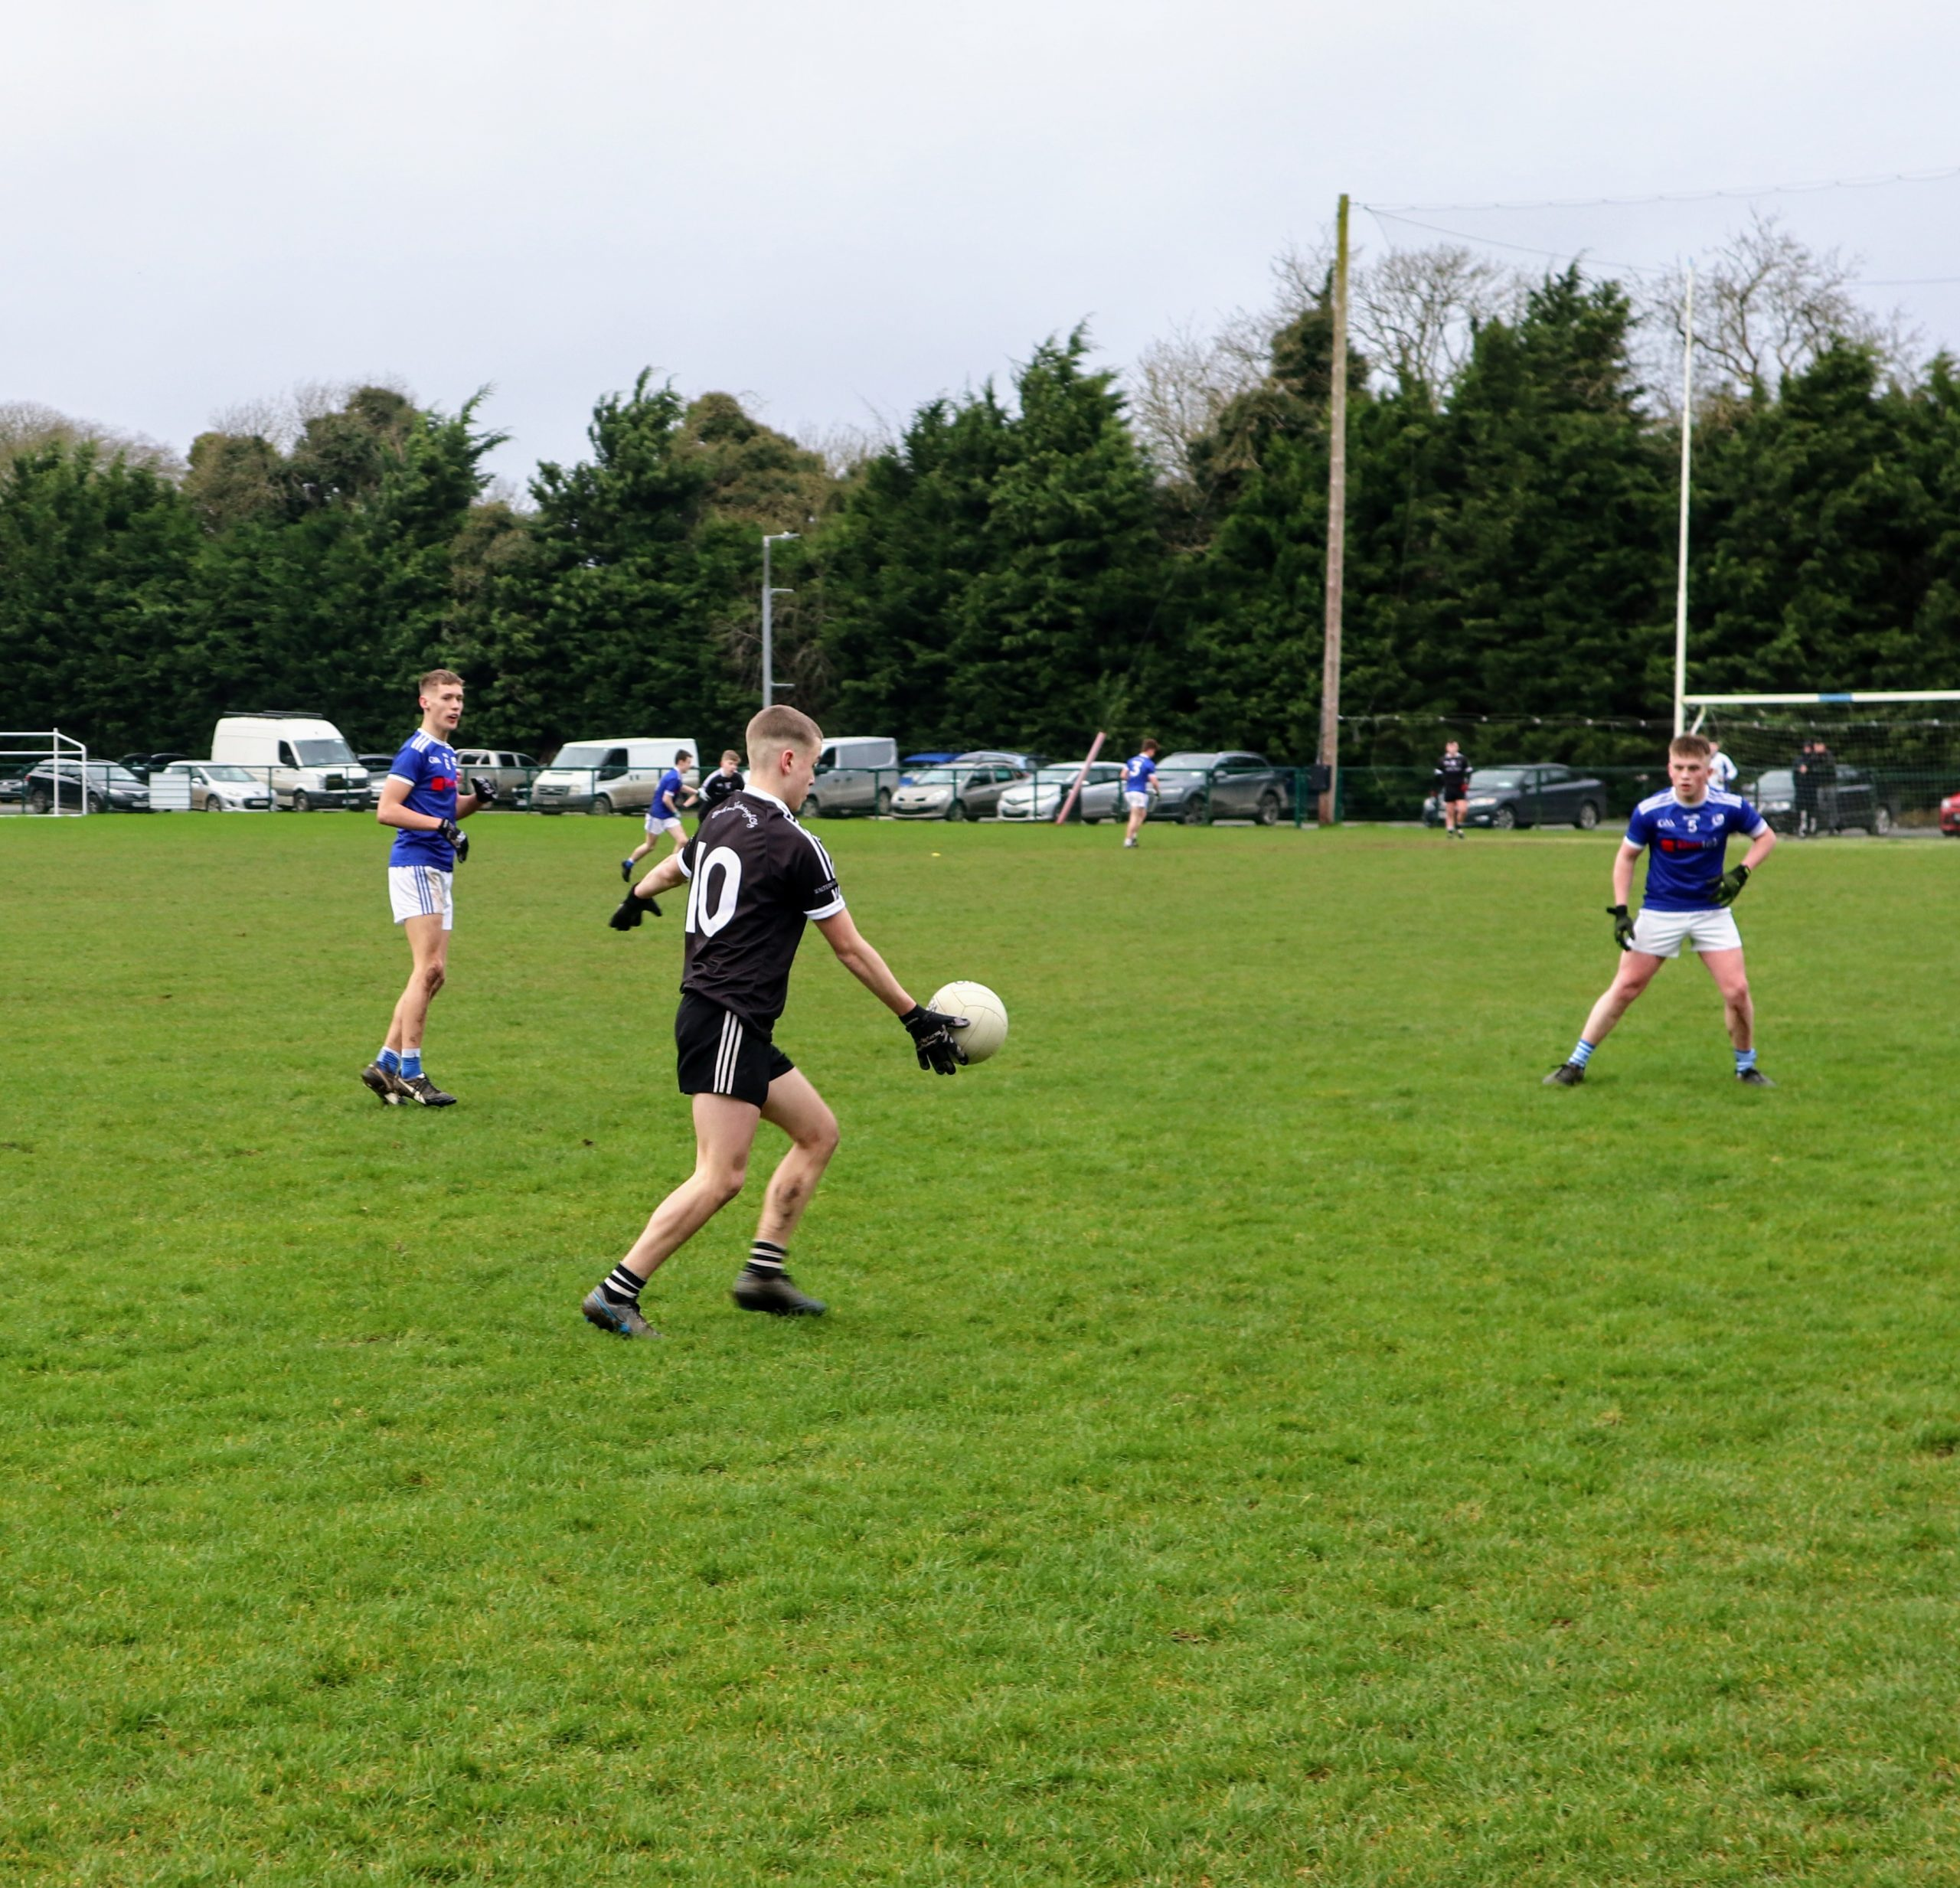 Minors lose out to Skryne in MFL round 2 clash